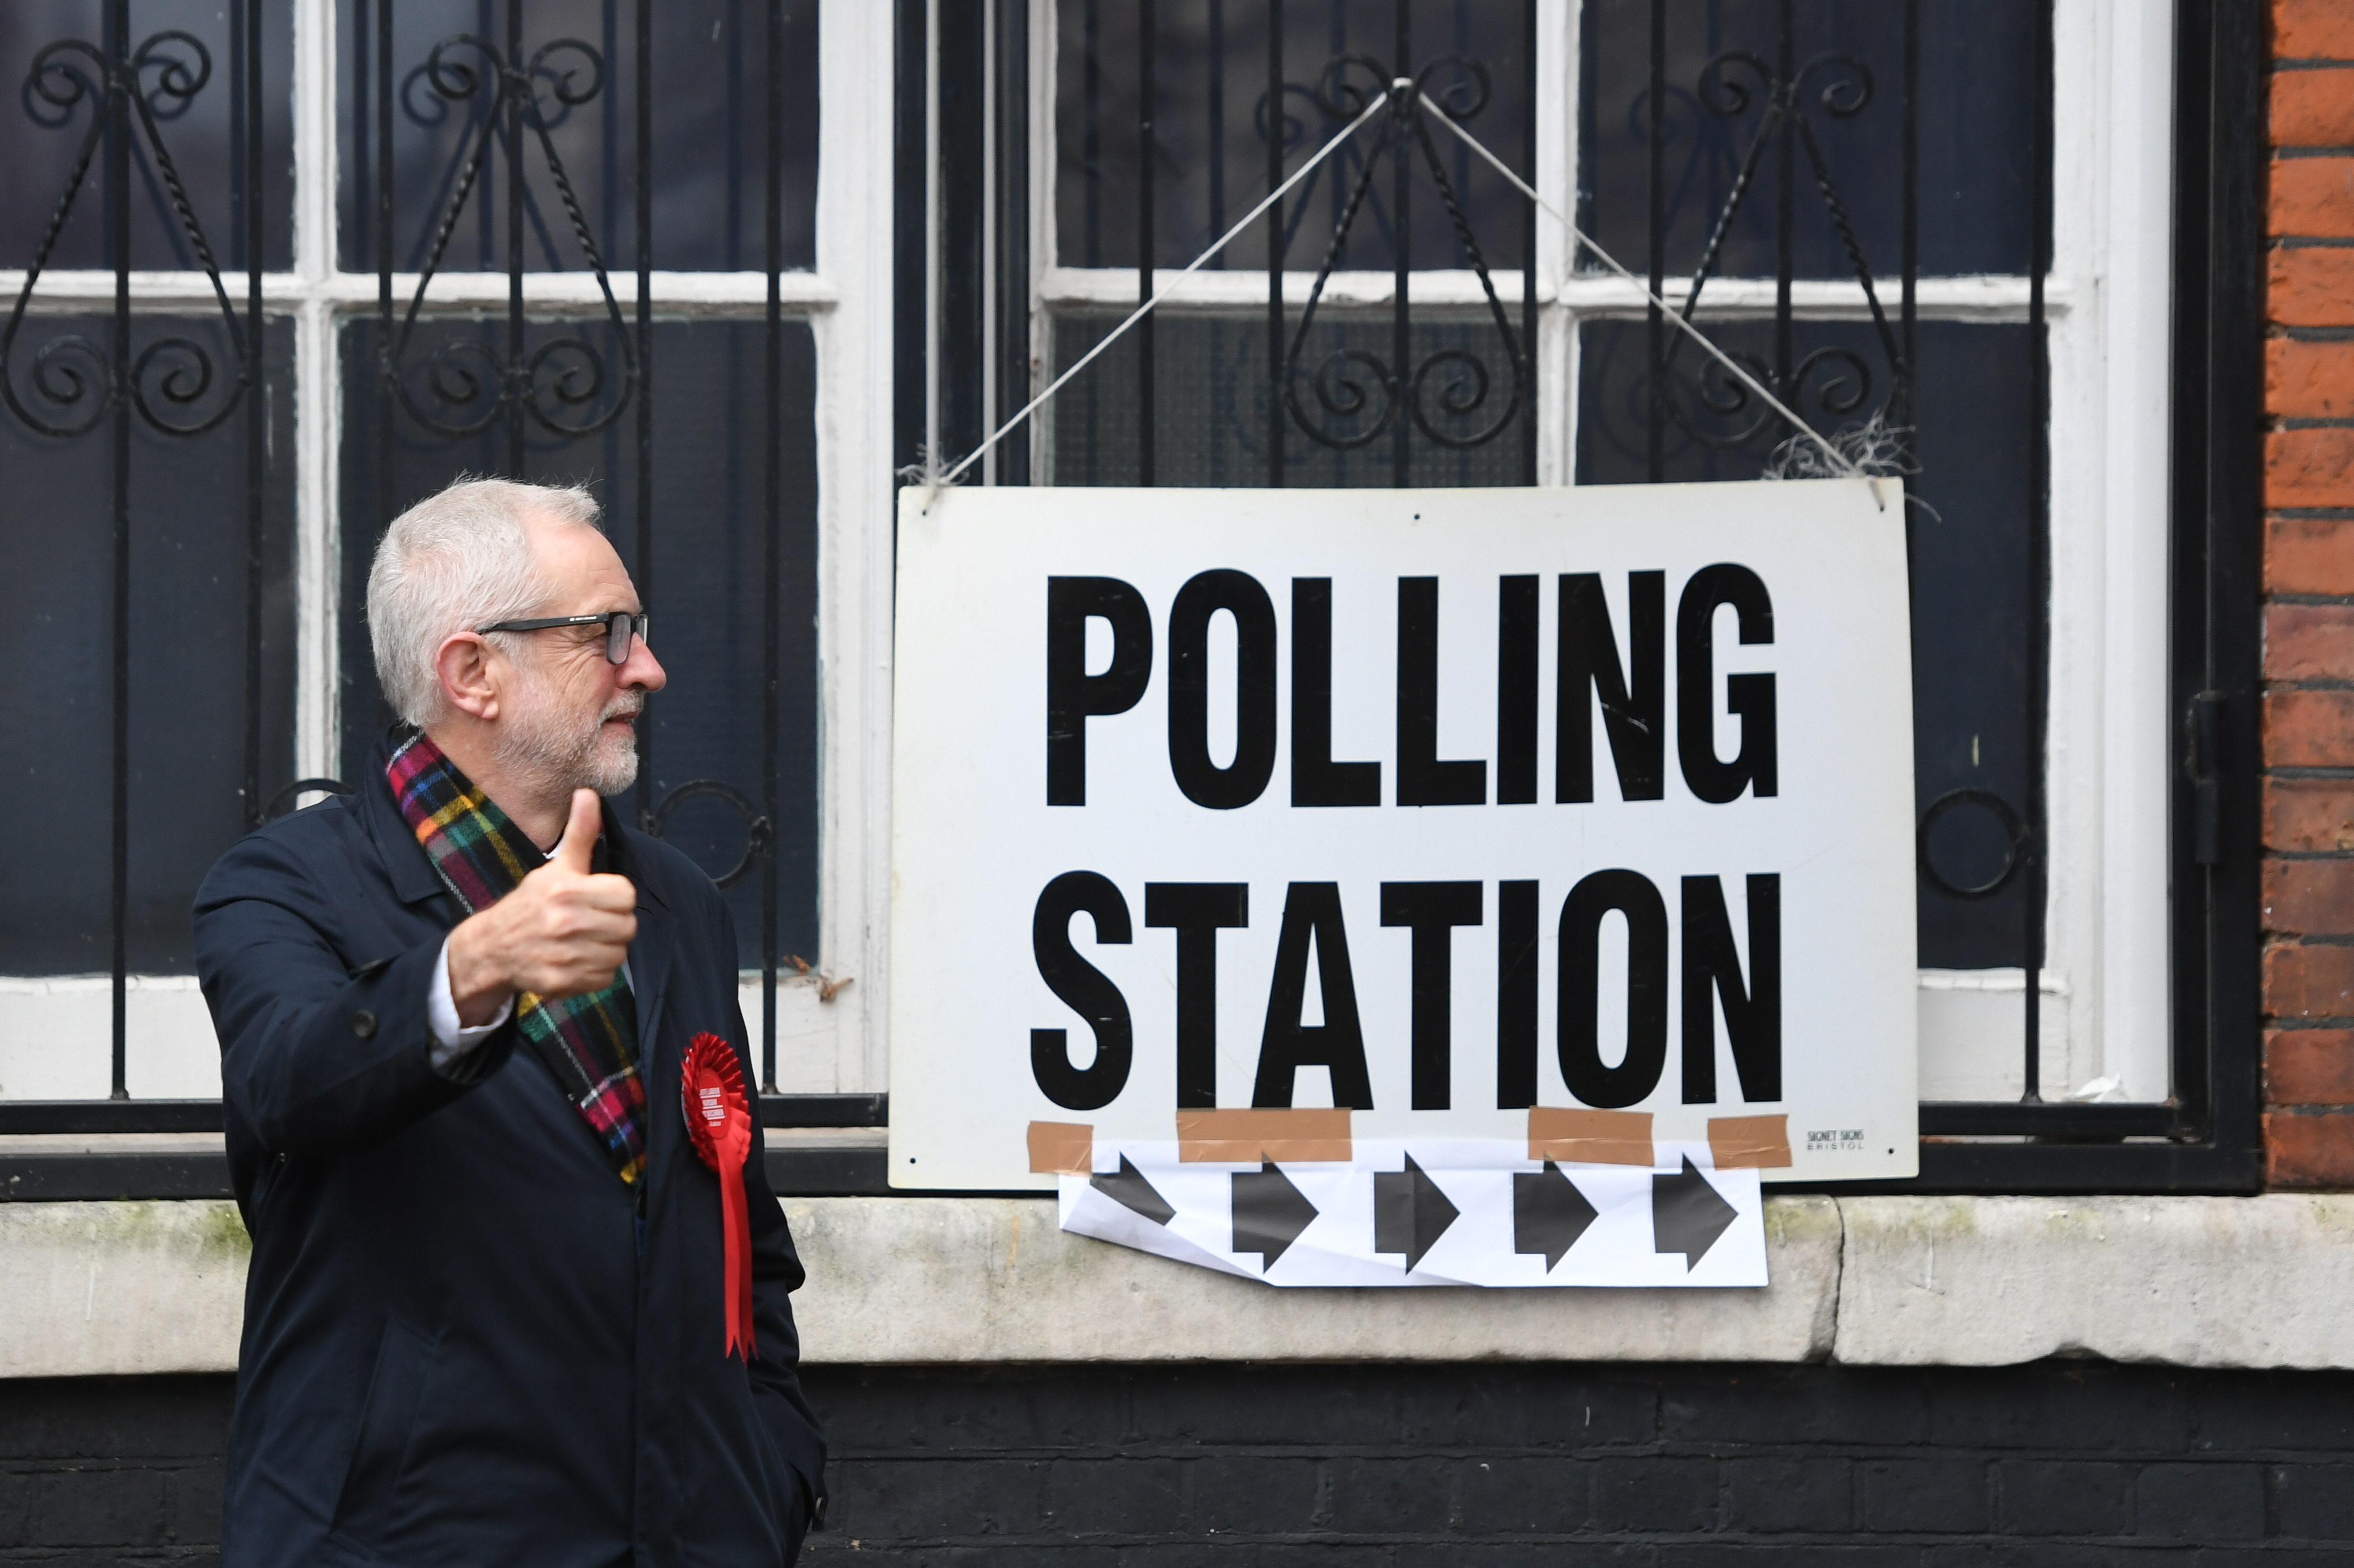 Labour leader Jeremy Corbyn gives a thumbs up as he and his wife Laura Alvarez cast their votes in the 2019 General Election at the polling station at Pakeman Primary School in Islington, north London, (Photo by Joe Giddens/PA Images via Getty Images)